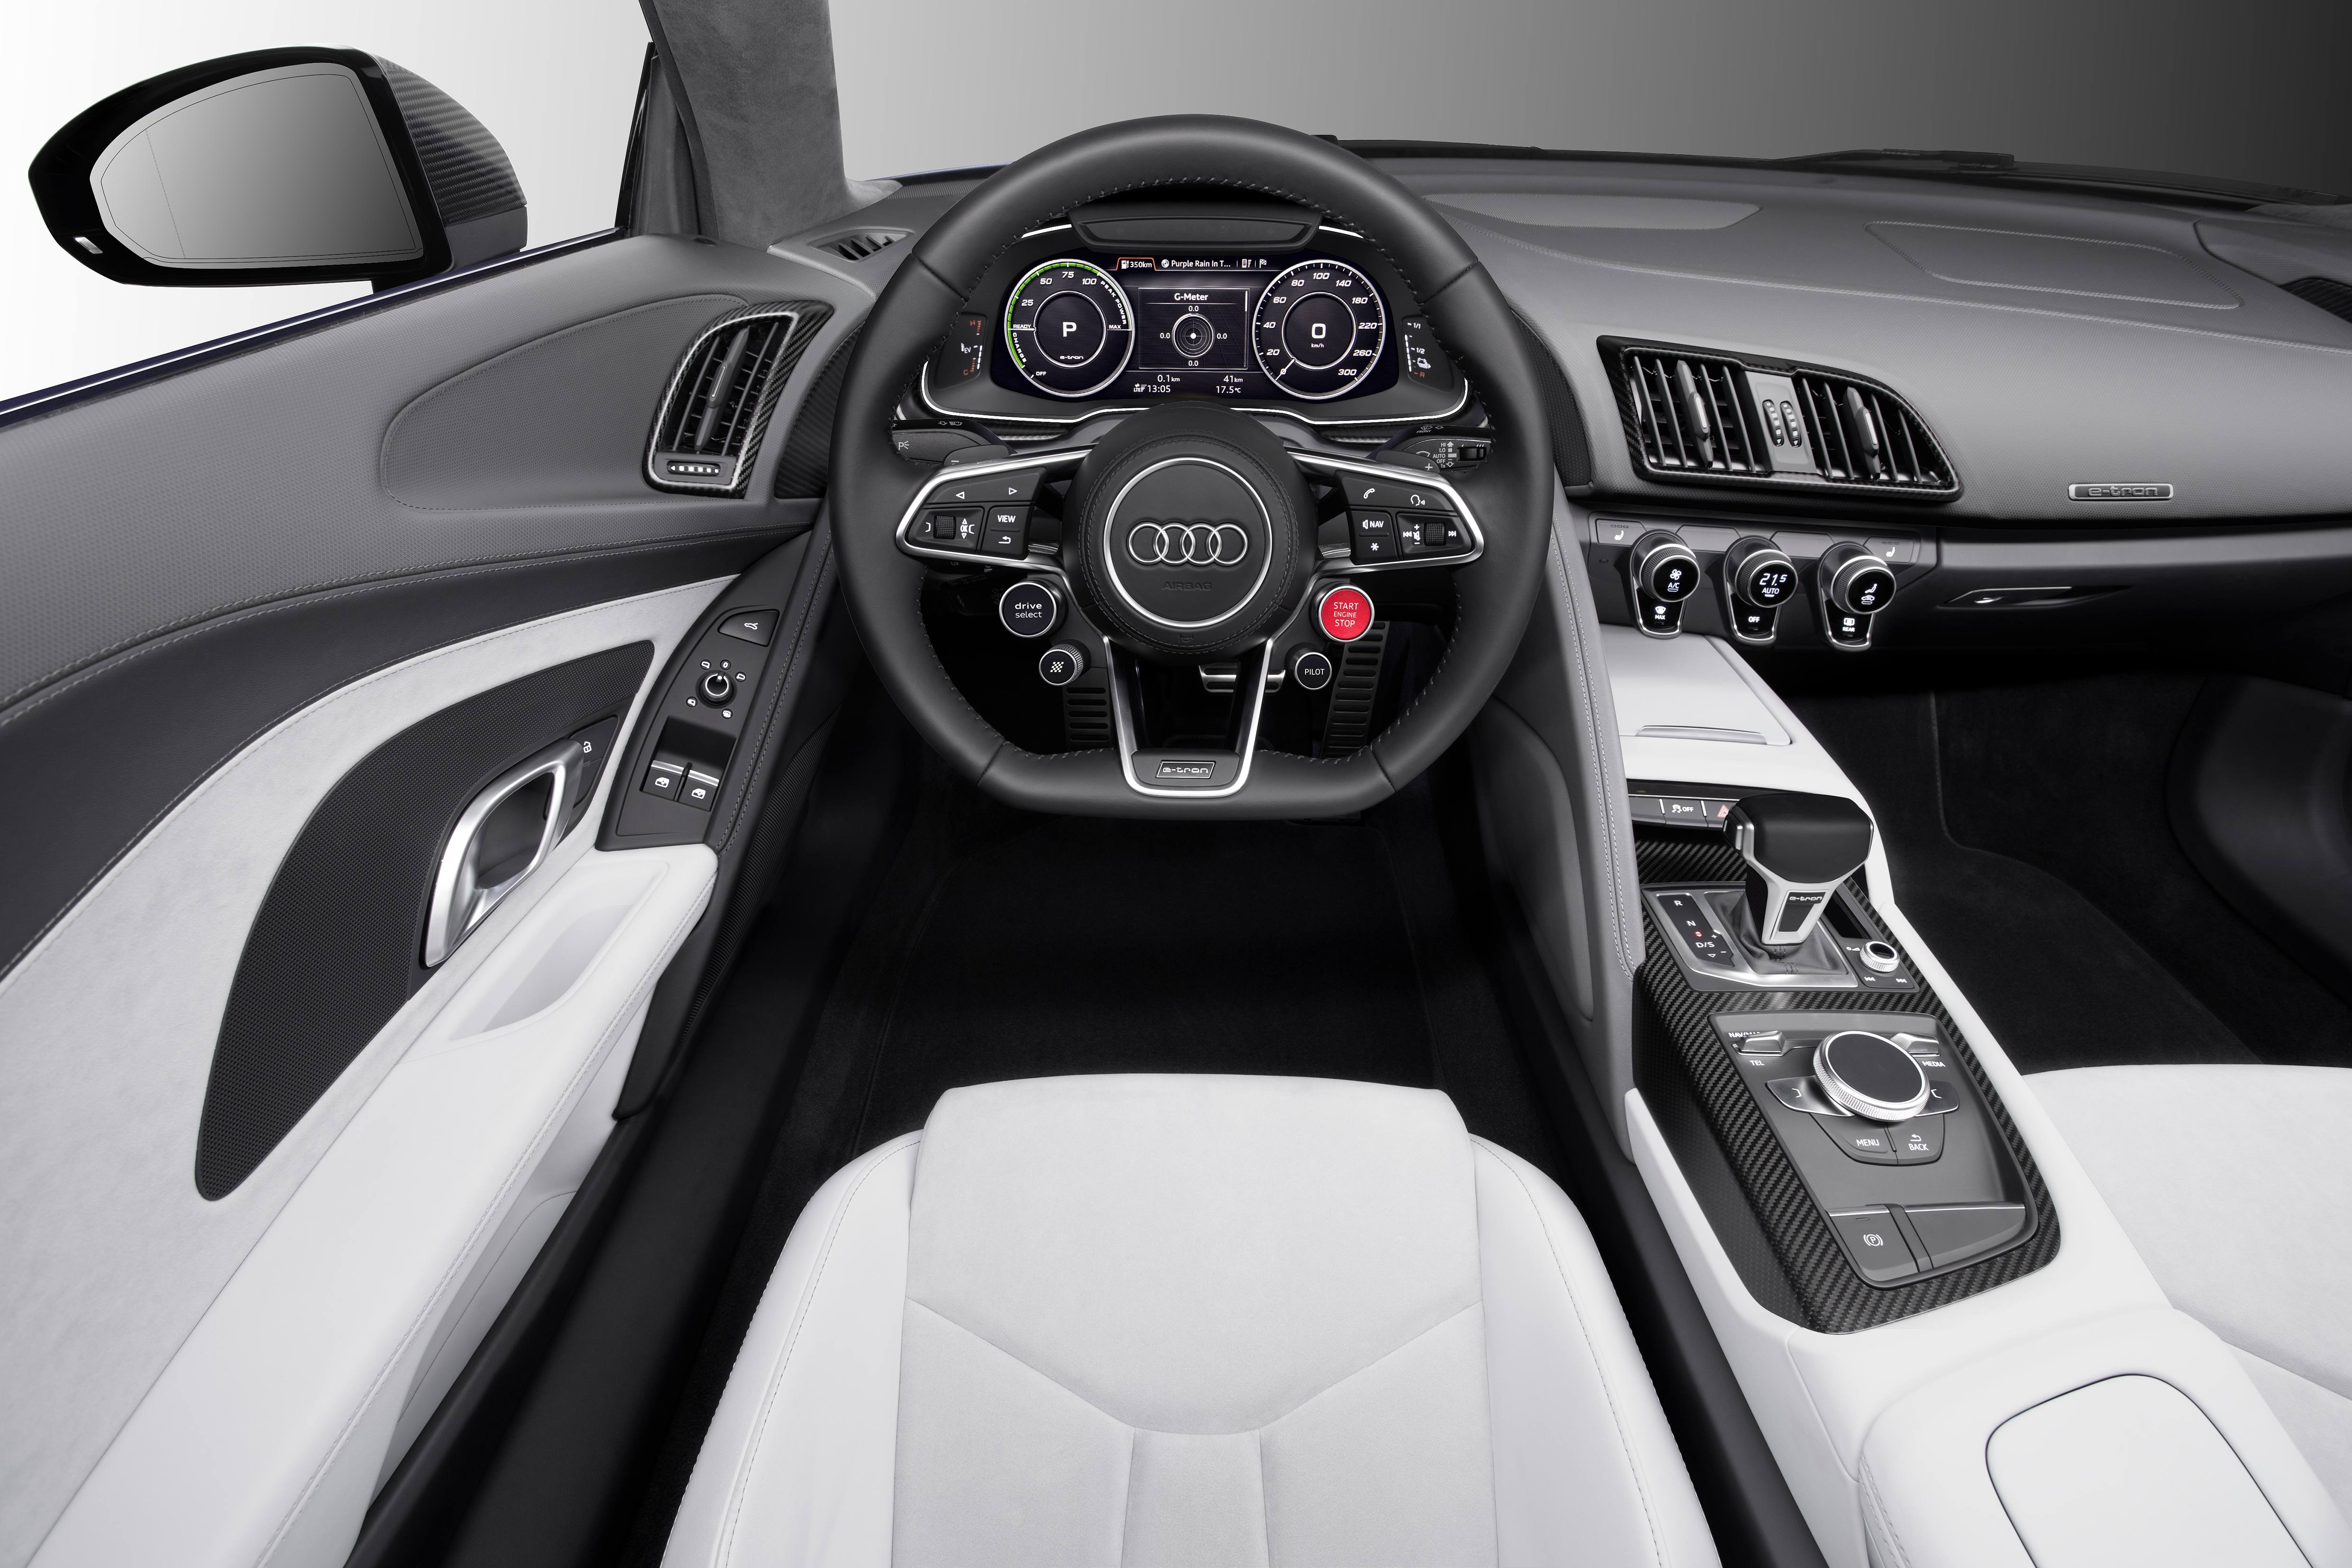 Audi R8 e-tron Piloted driving Concept Model interior features and design